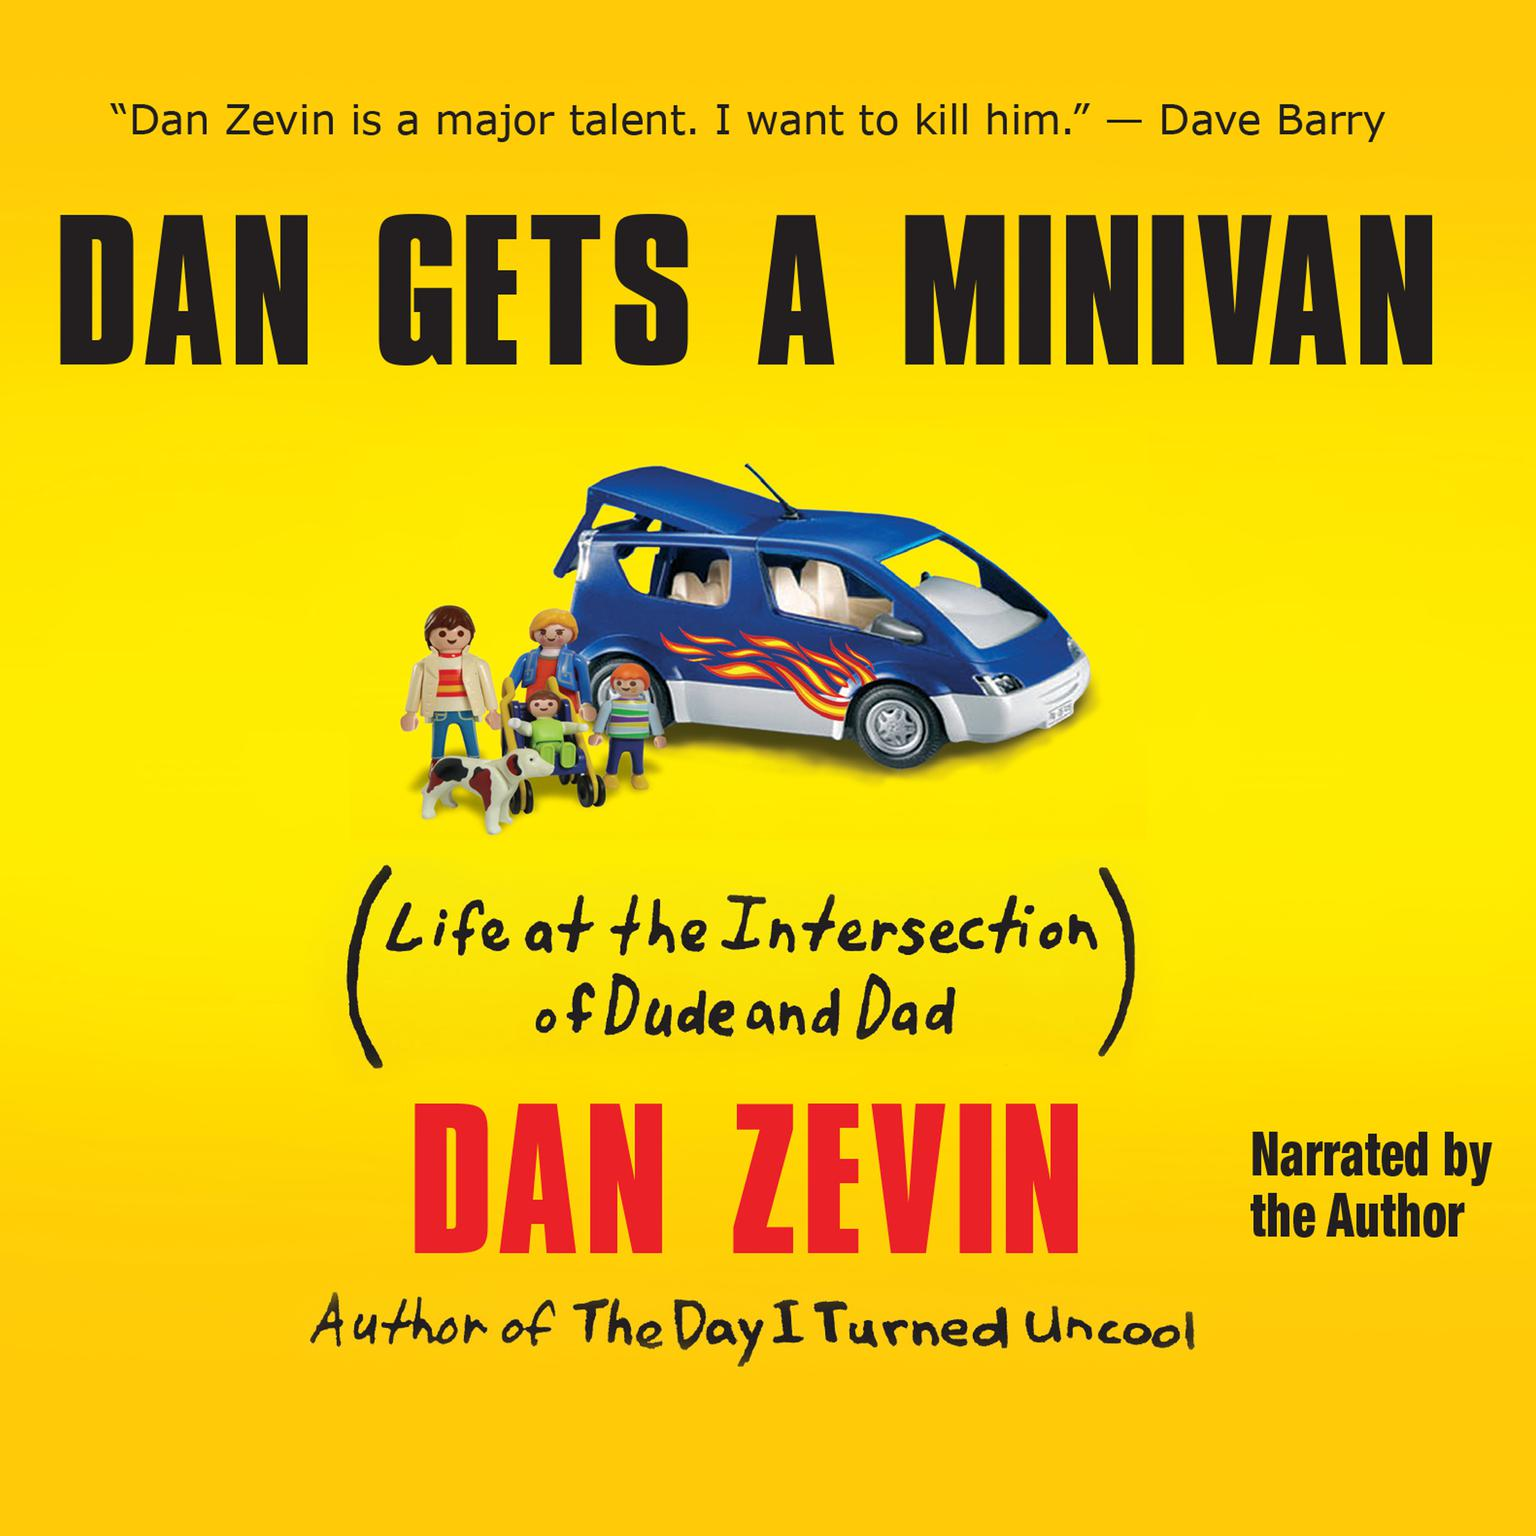 Dan Gets a Minivan: Life at the Intersection of Dude and Dad Audiobook, by Dan Zevin